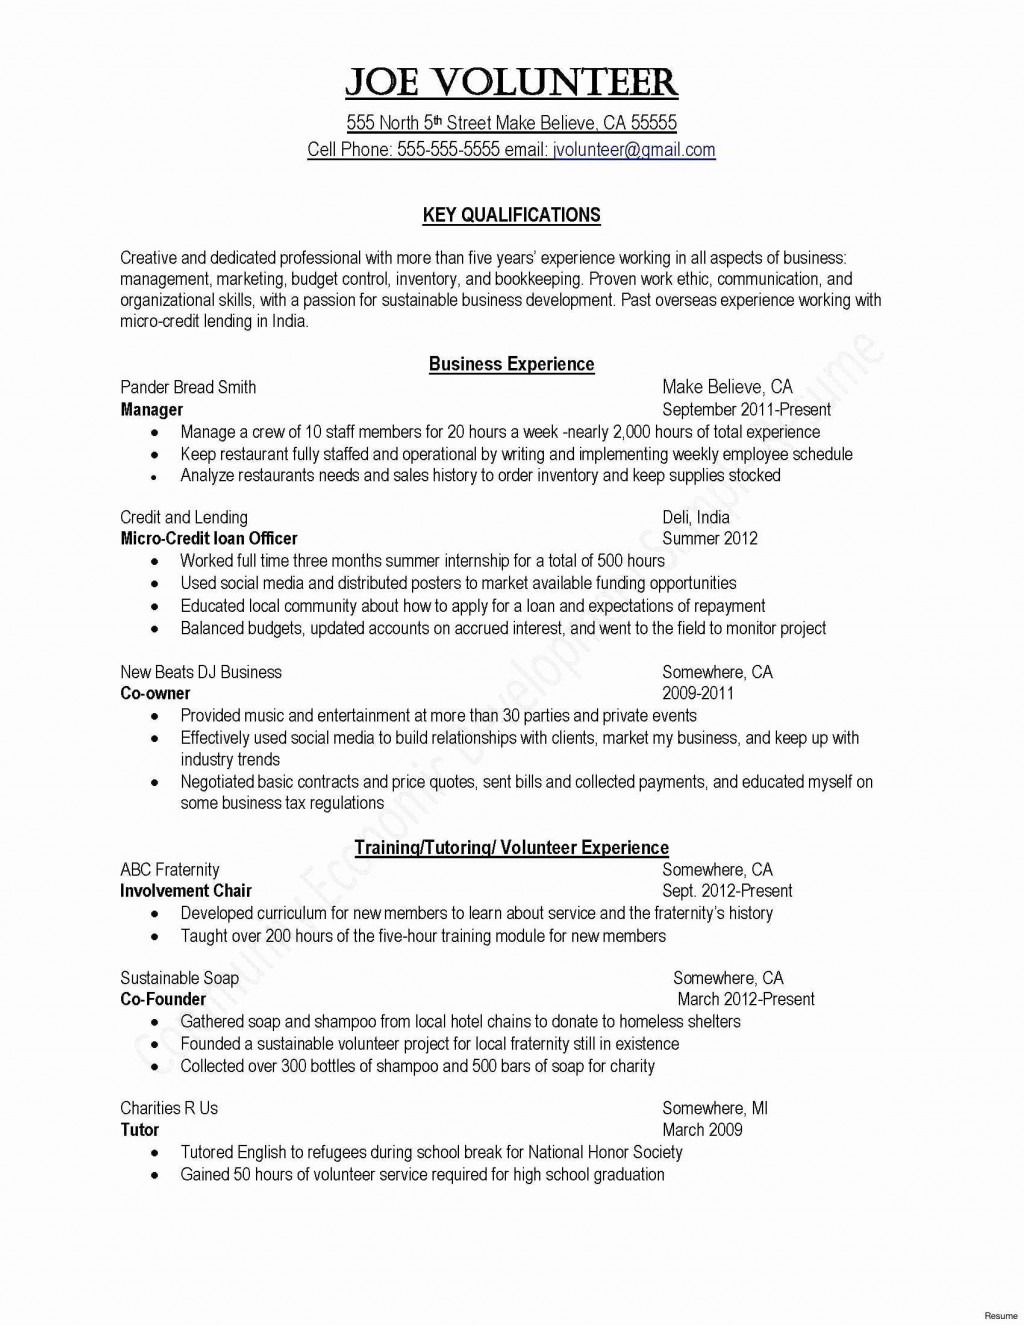 009 Njhs Essay Samples Essays Examples Sample Recommendation Letter Resume Builder San Antonio Lovely National Junior Honor Society Example Wondrous Large